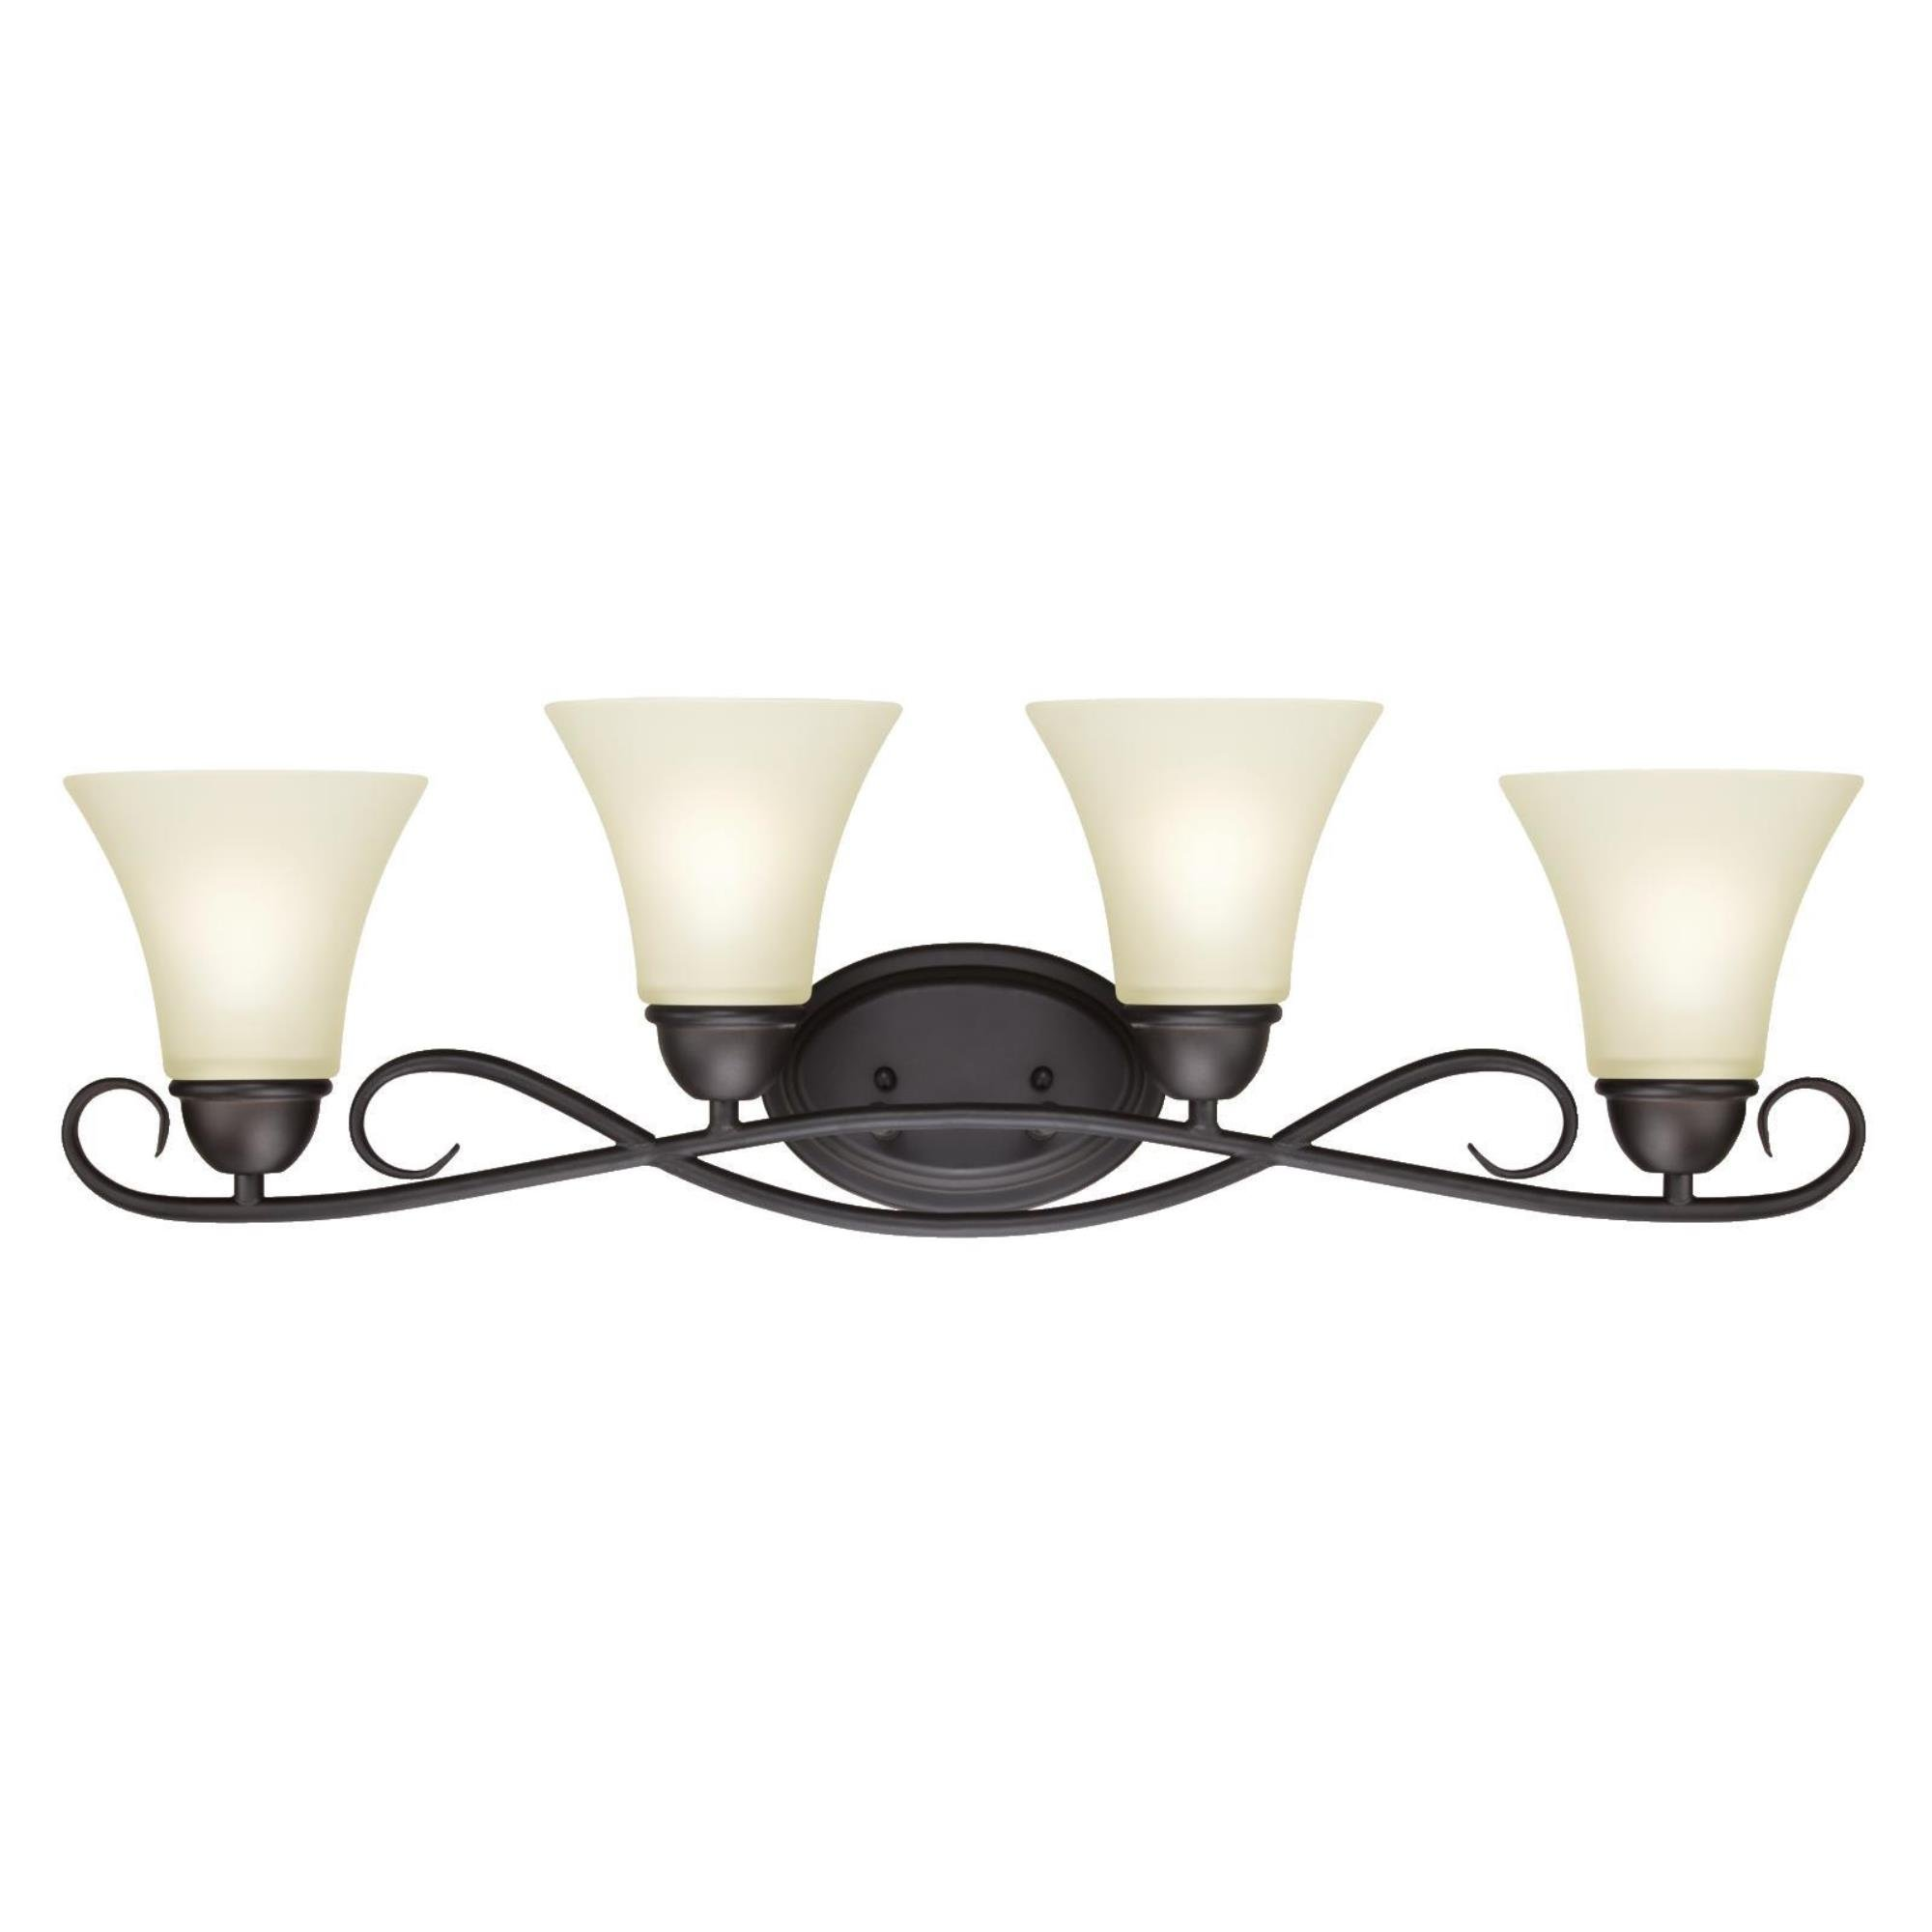 6307000 Dunmore Four-Light Indoor Wall Fixture, Oil Rubbed Bronze Finish with Frosted Glass by Westinghouse